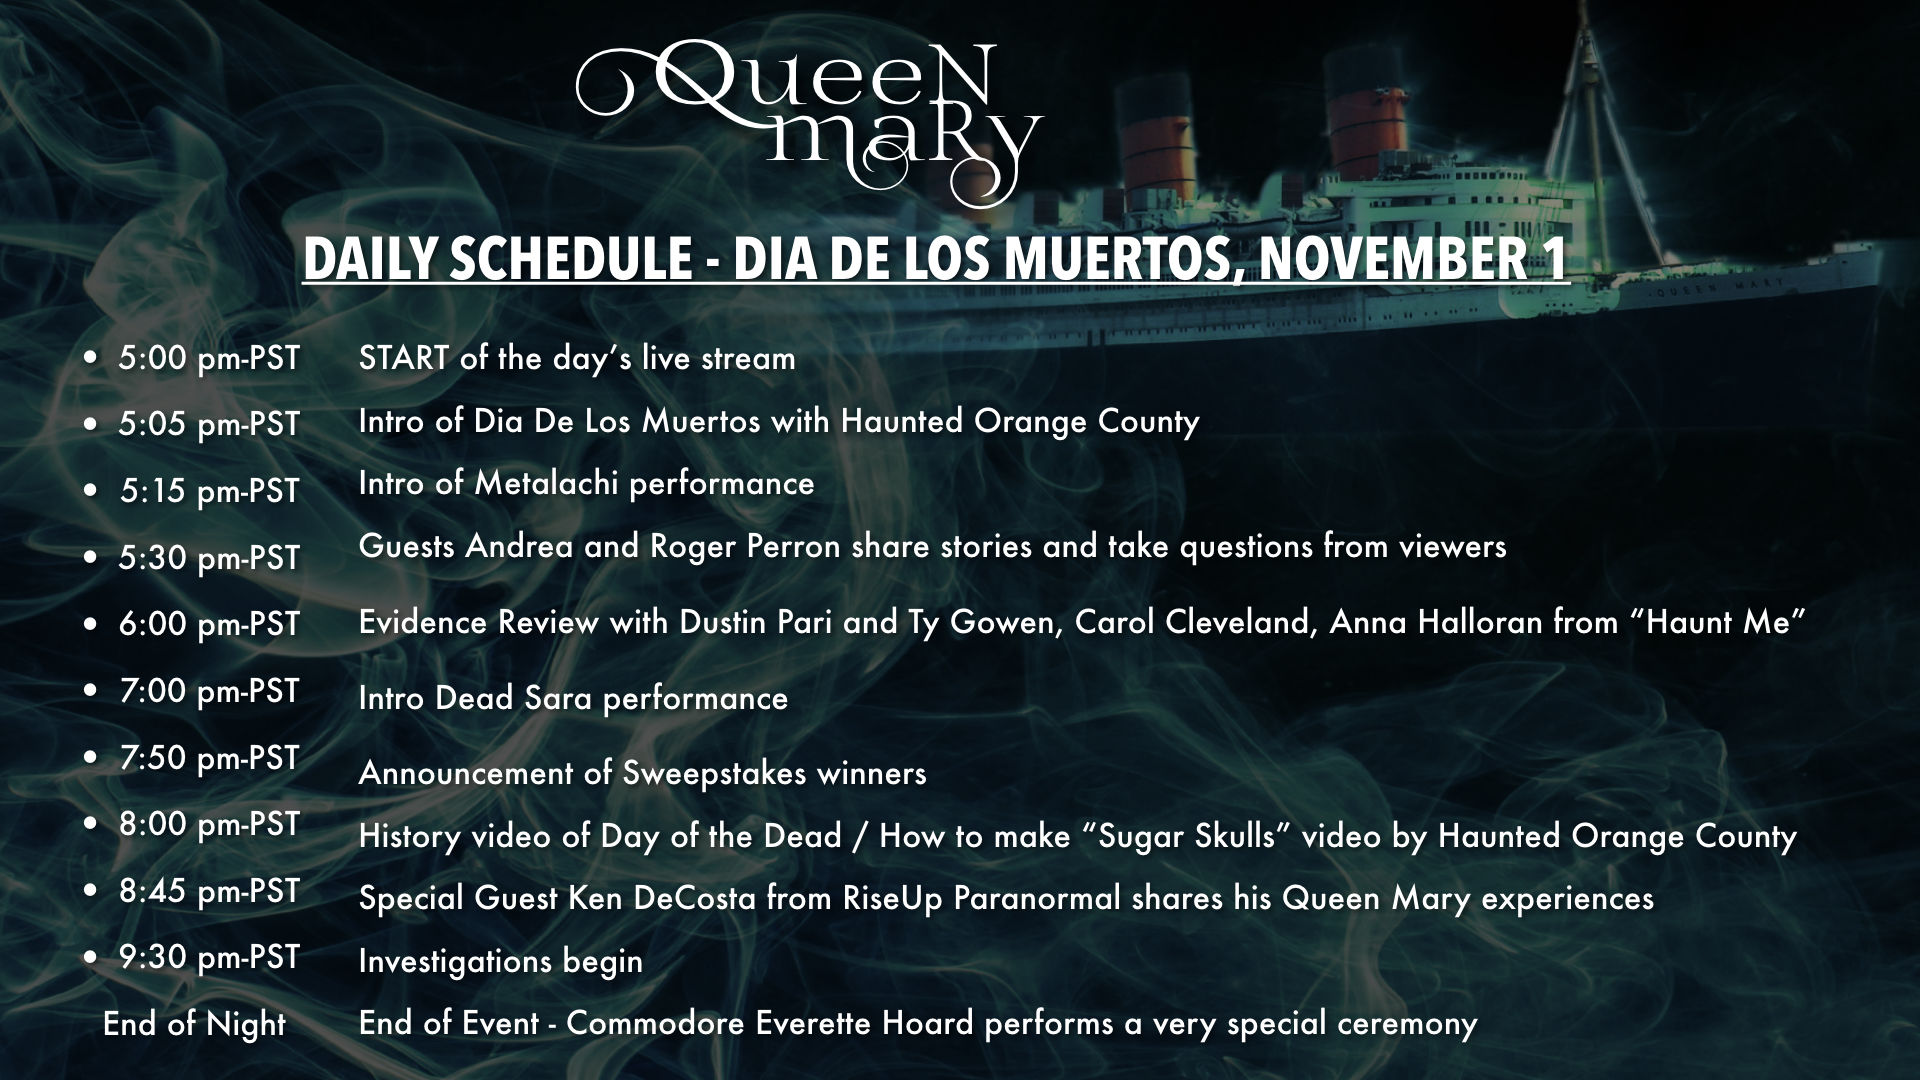 Queen Mary Live Day 4 Edited Recording